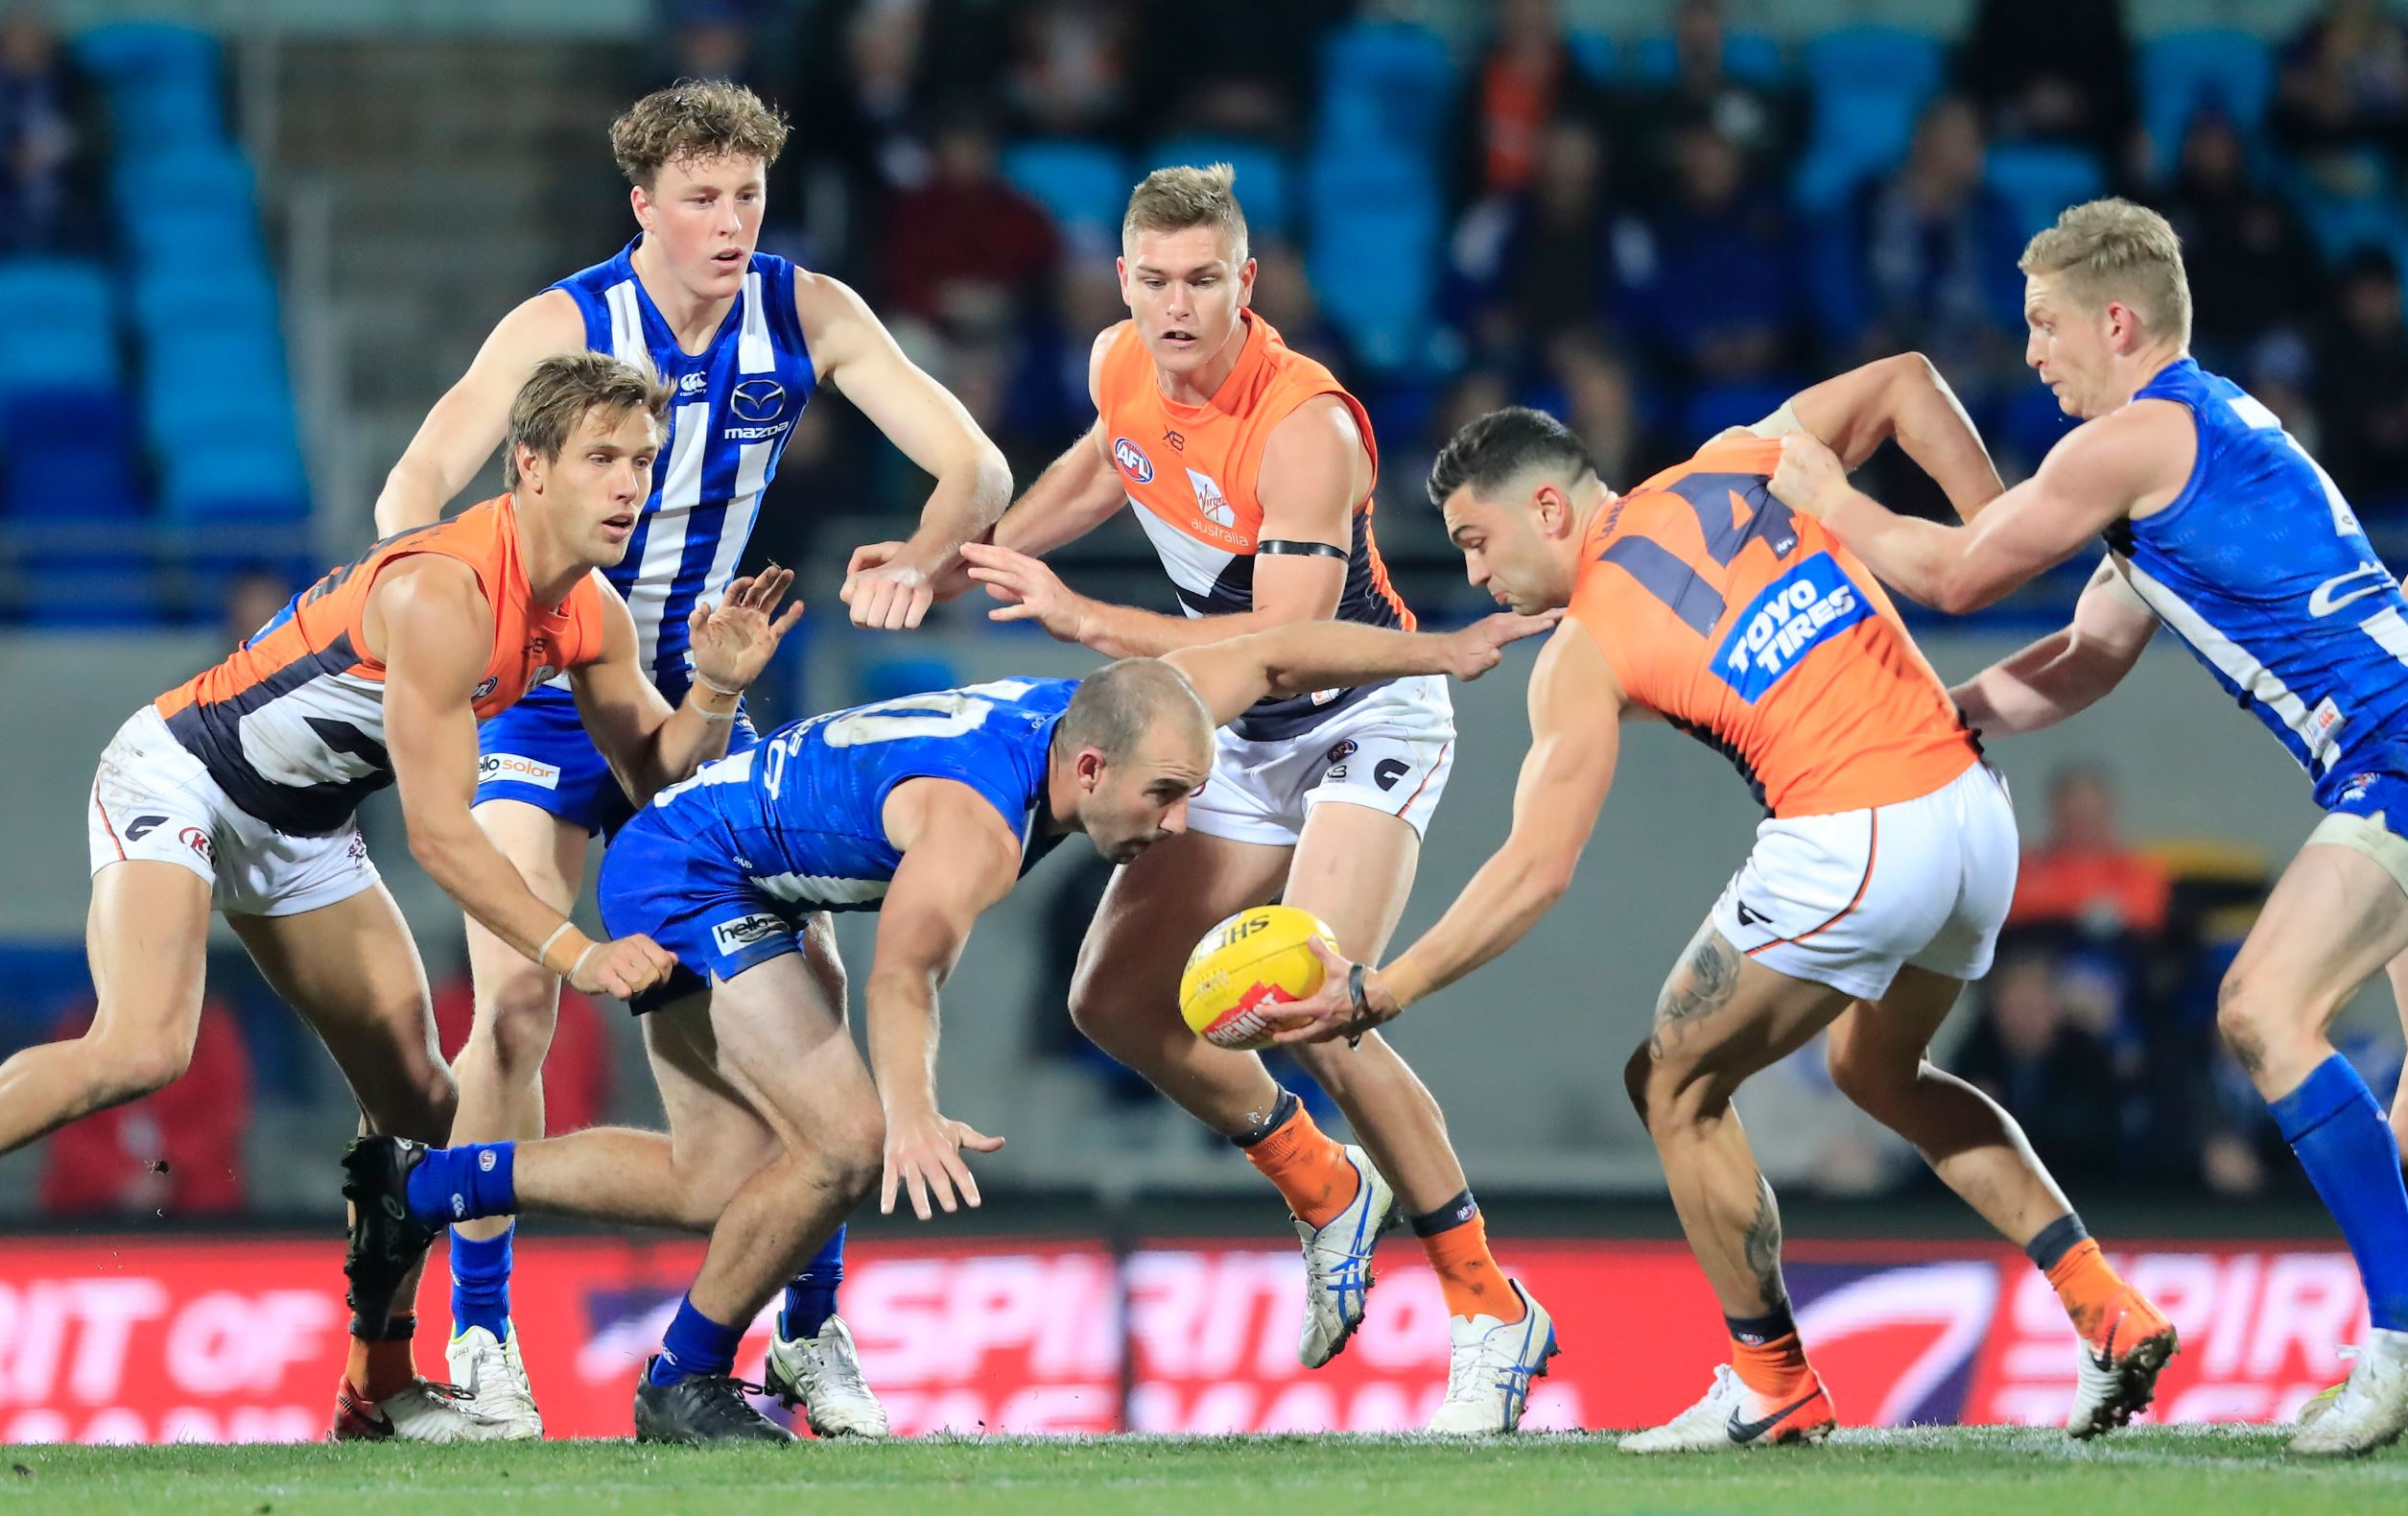 Giants beat spirited North Melbourne outfit in Hobart